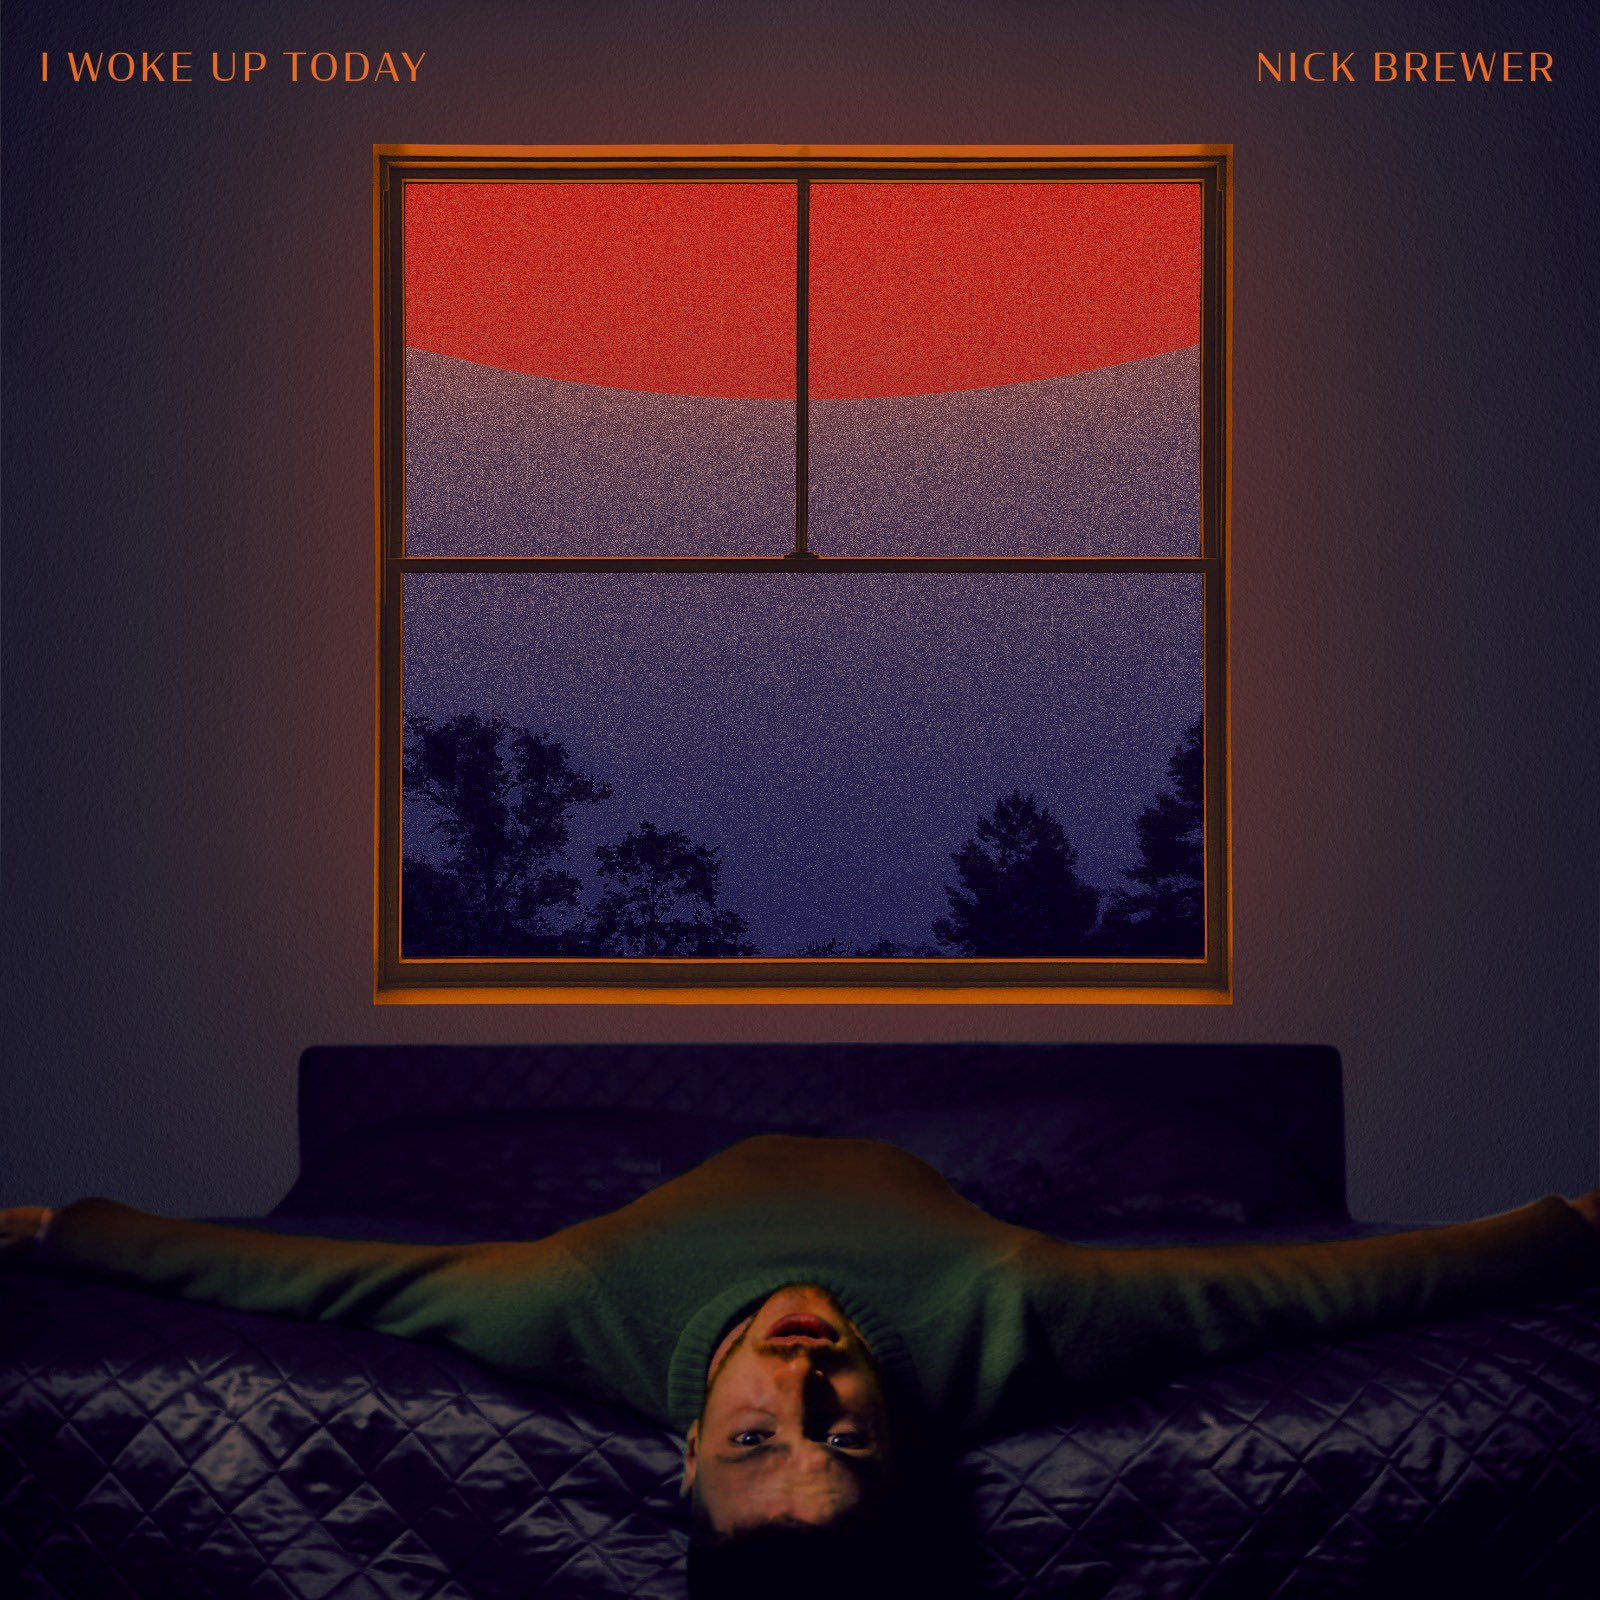 Listen to Nick Brewer's introspection « I Woke Up Today » featuring Jake Isaac